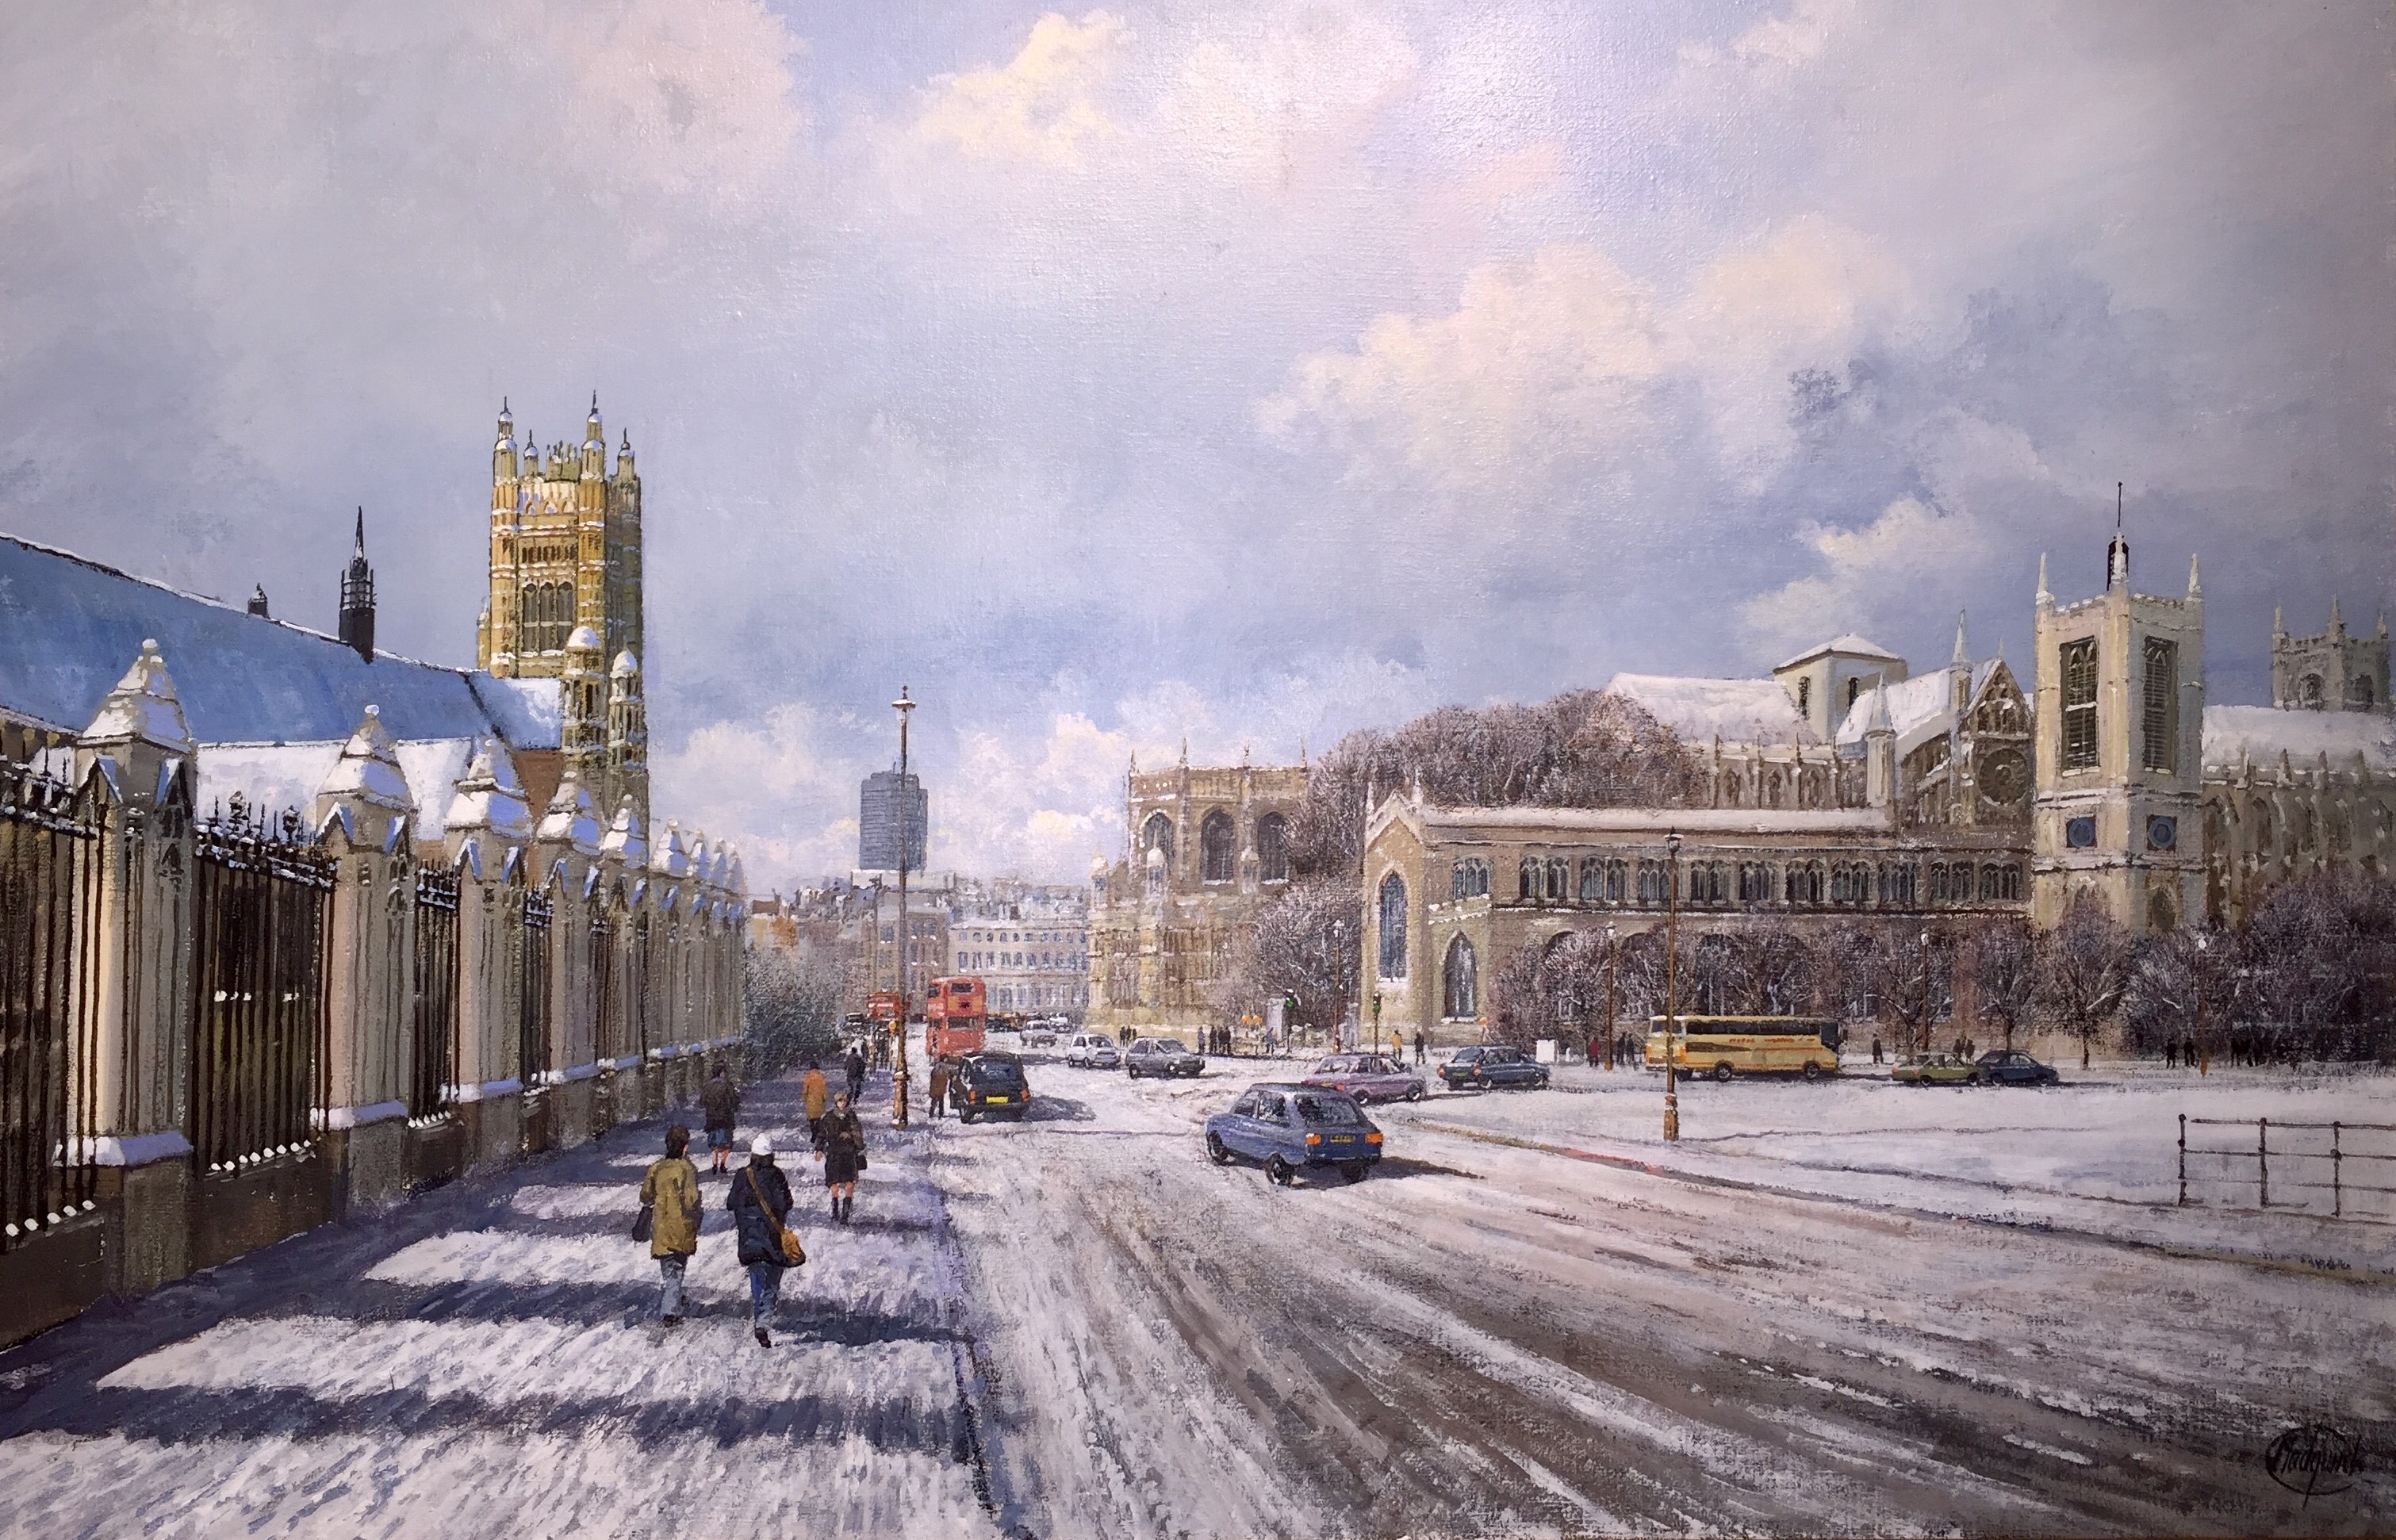 Snow at Westminster, London